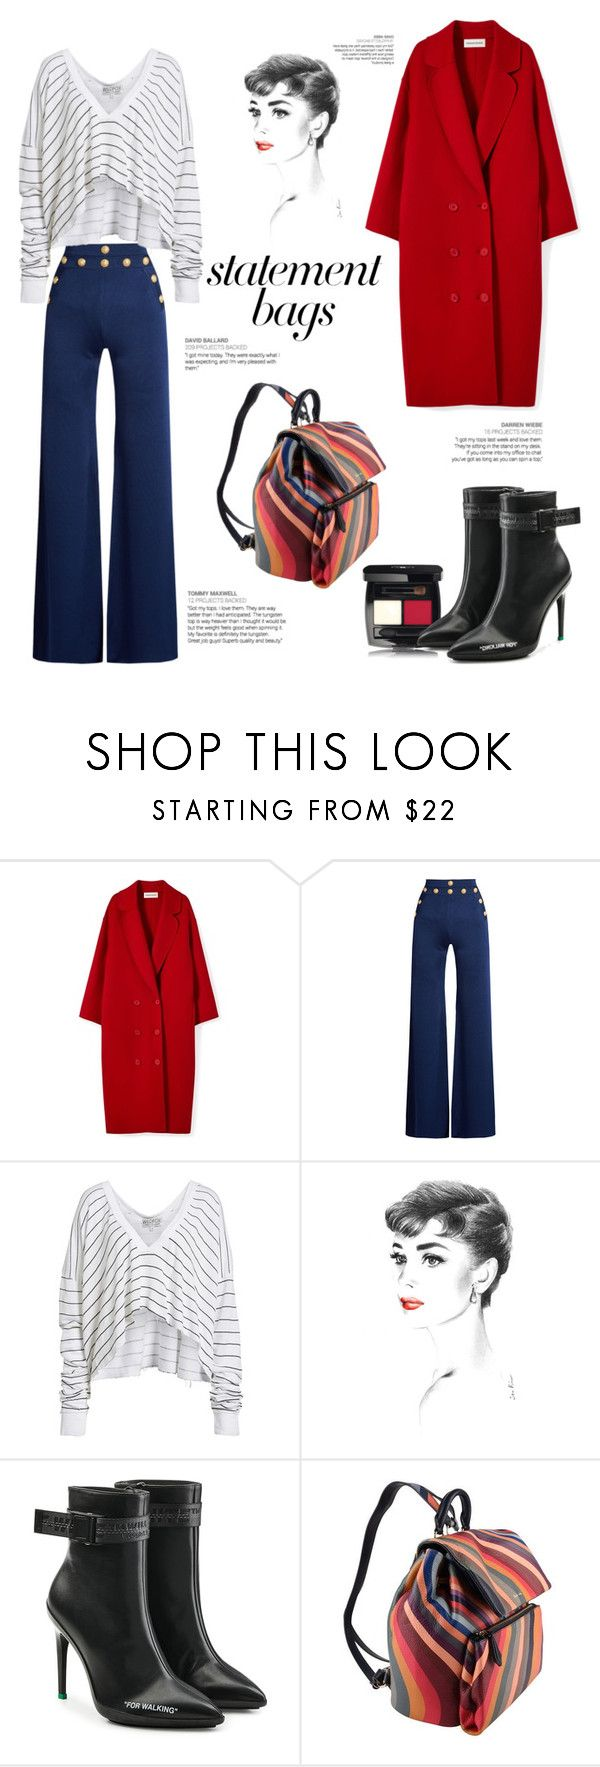 """""""little bag 🌈"""" by anoo17k ❤ liked on Polyvore featuring Balmain, Wildfox, Off-White, Paul Smith and statementbags"""